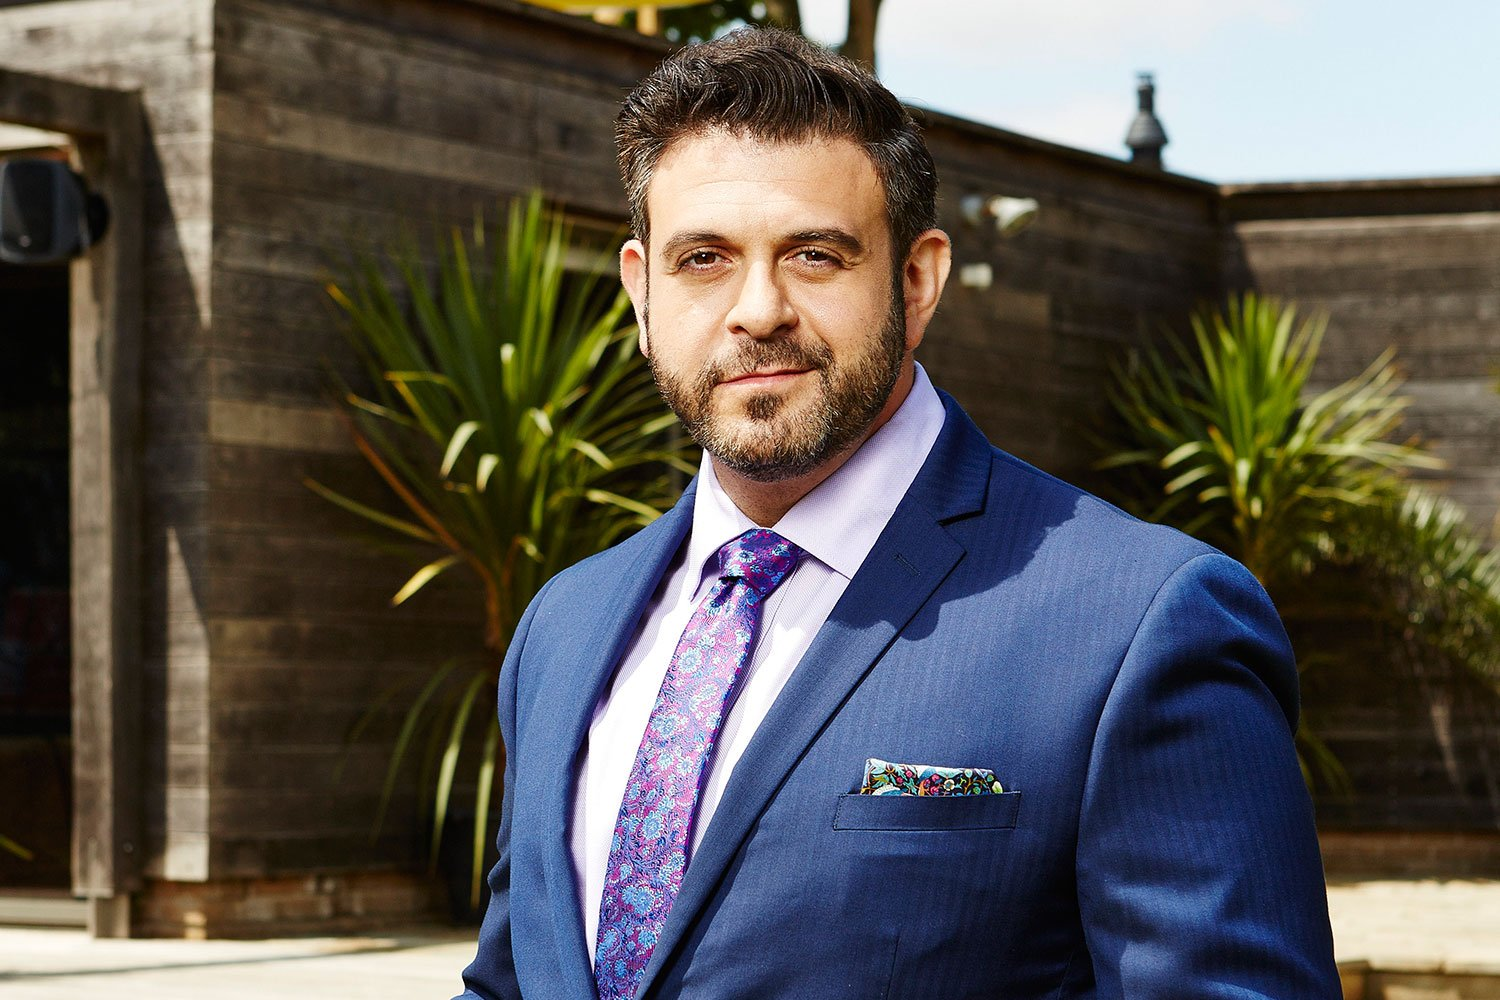 Adam Richman smiling fir for a picture wearing a blue suit